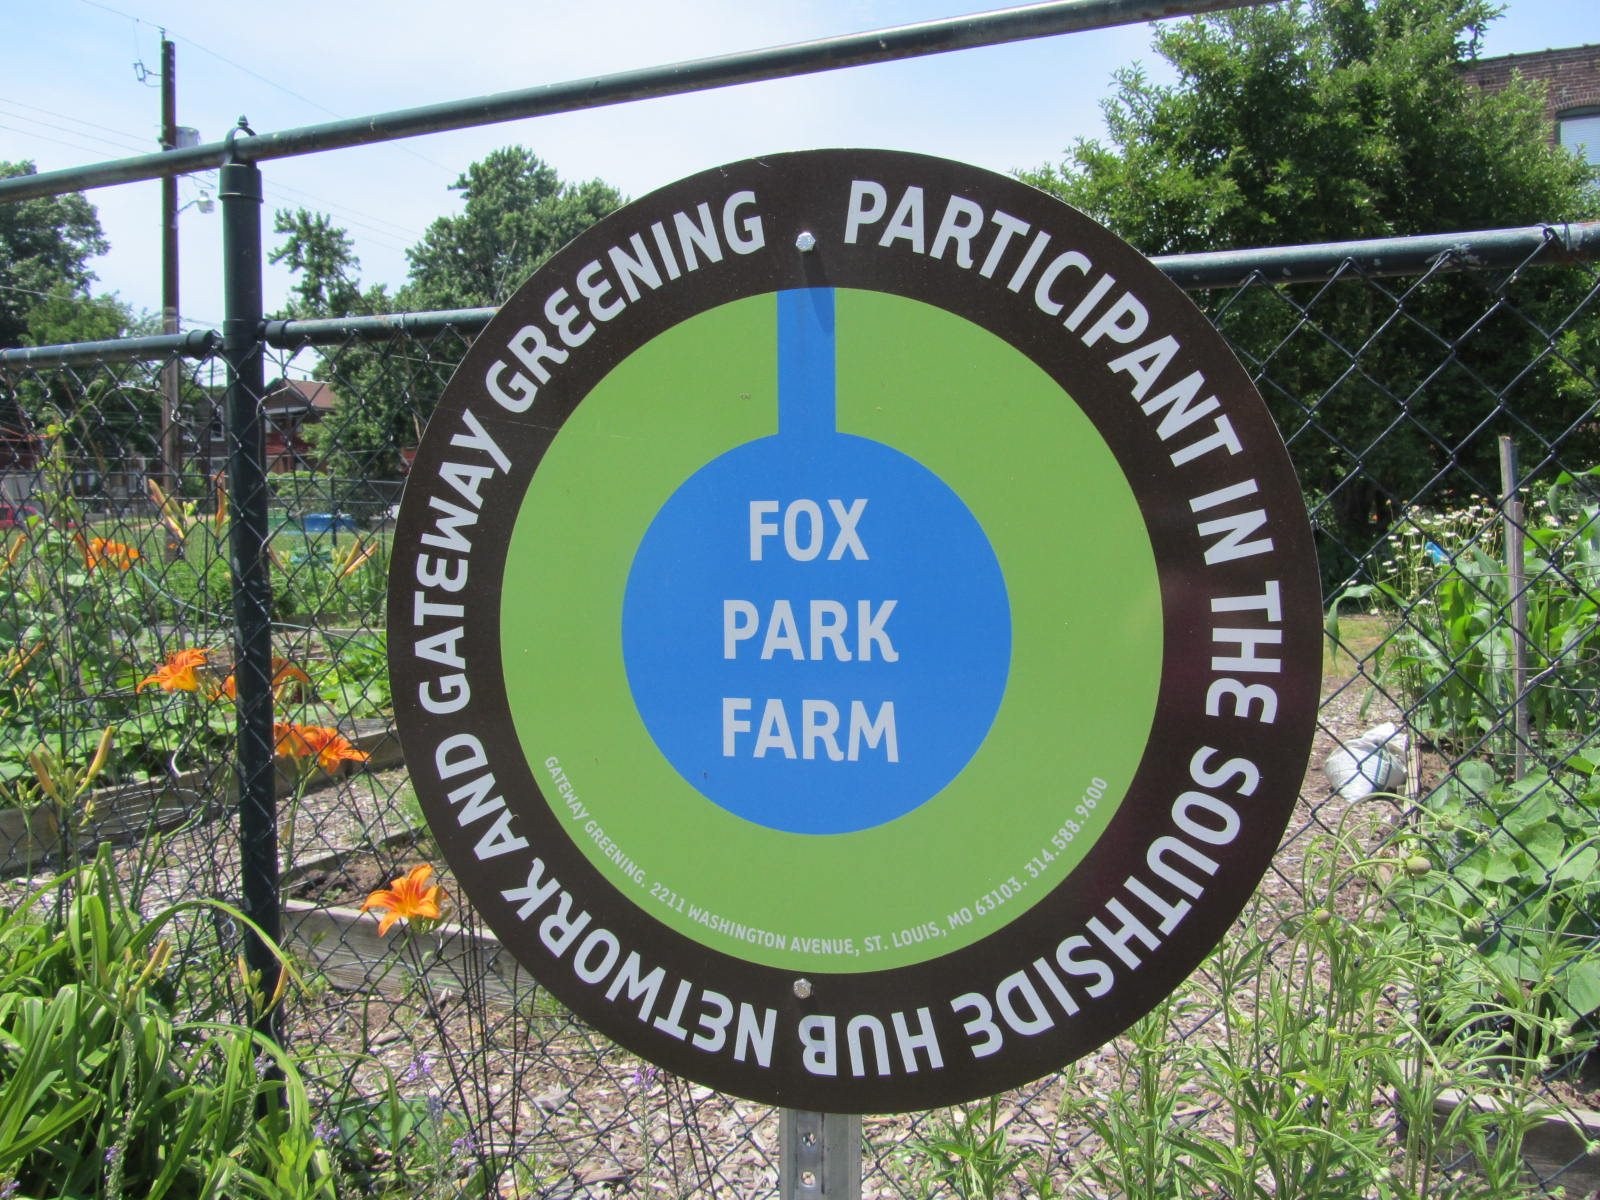 St. Louis in Photos: Fox Park |Arch City Homes